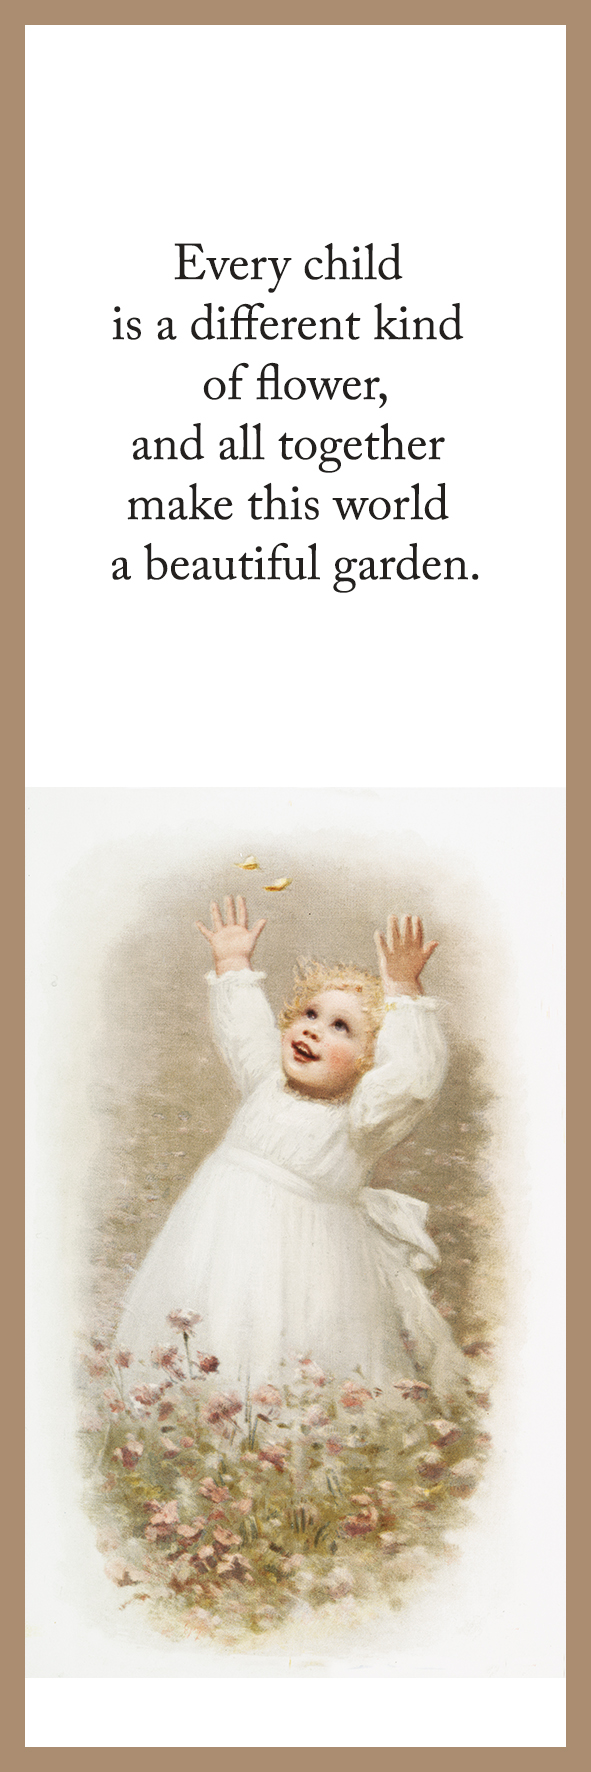 bookmark with quote and drawing of child